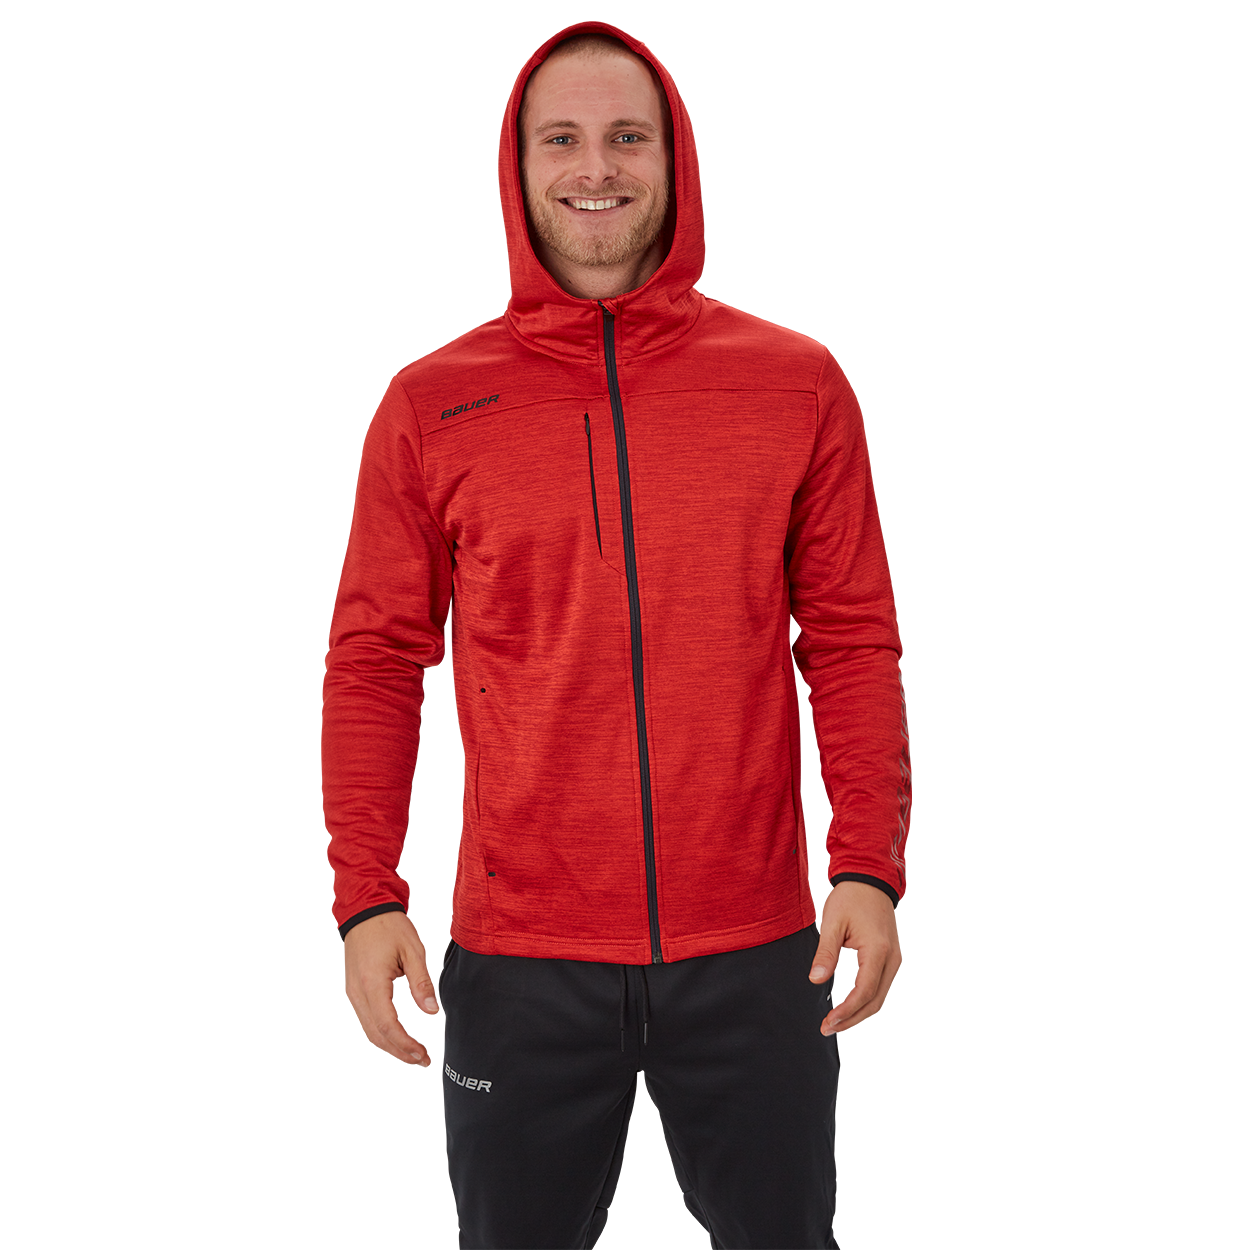 Bauer Vapor Fleece Zip Hoodie,Rot,Medium